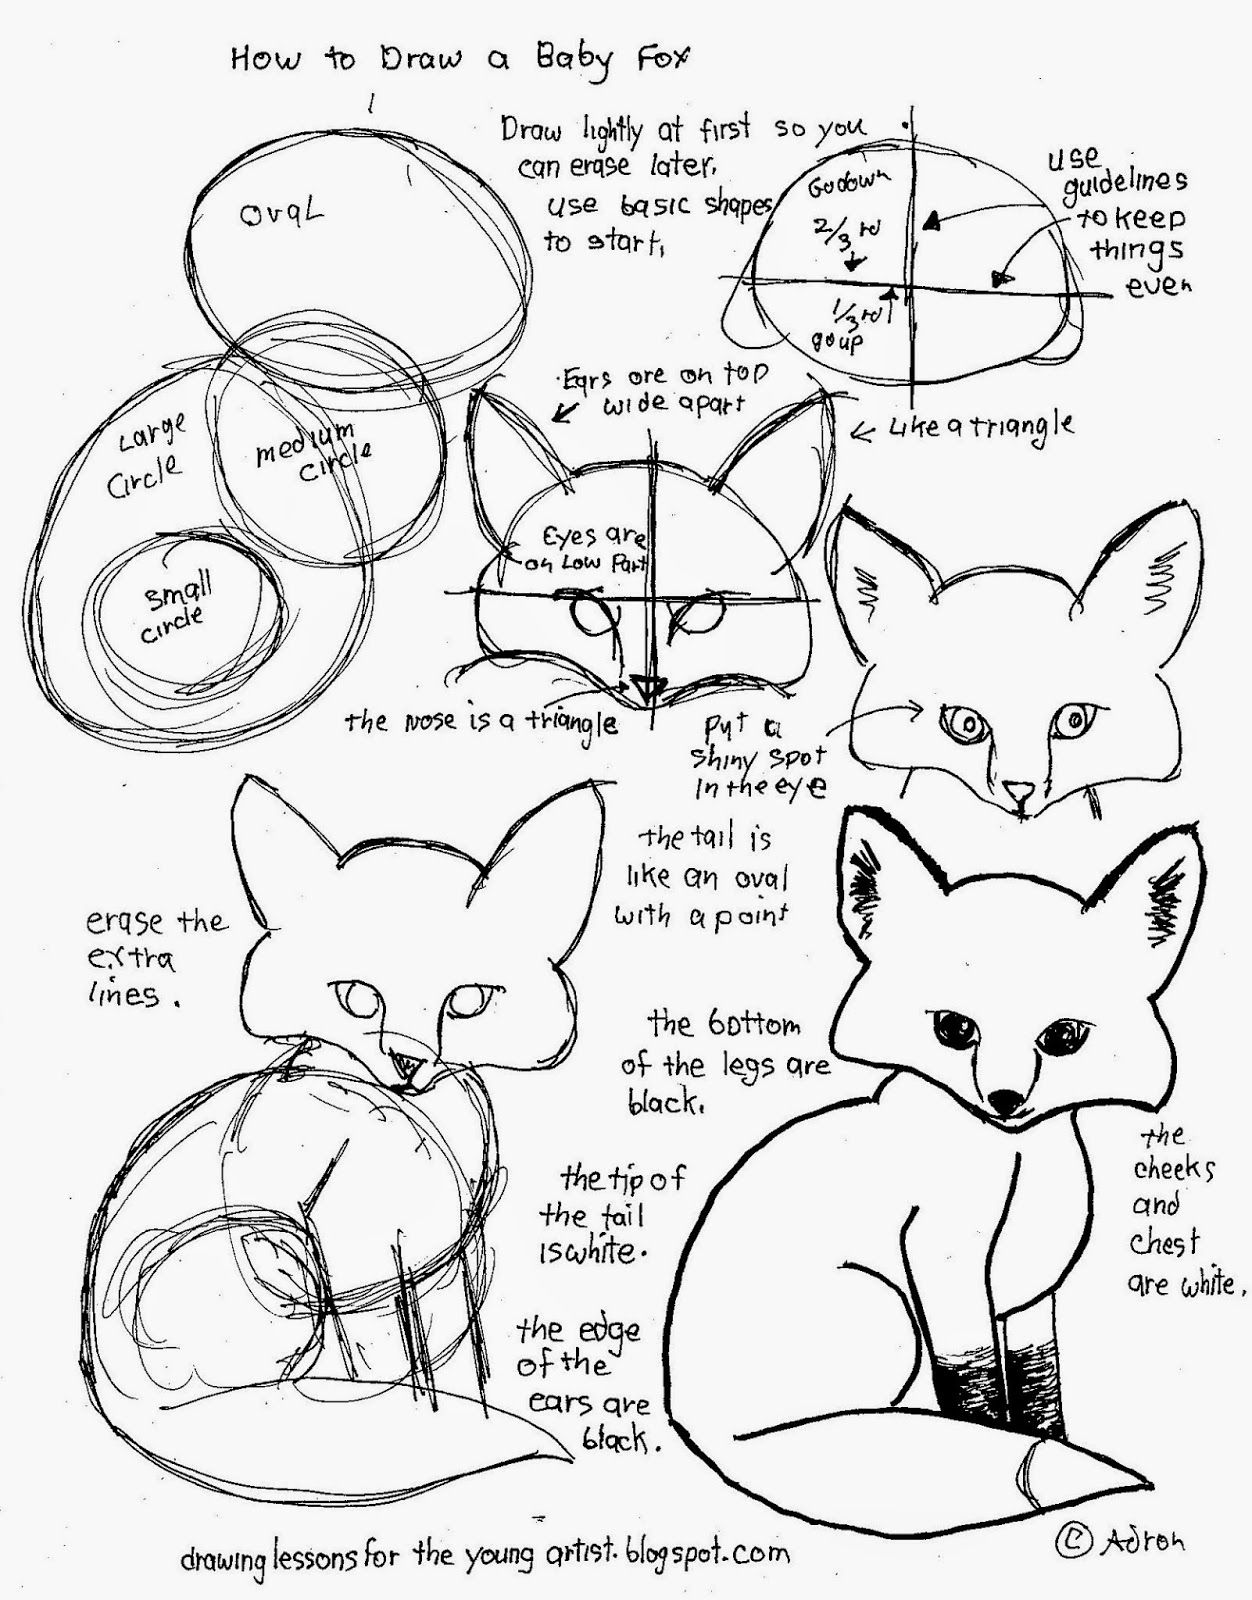 how to draw worksheets for the young artist how to draw a baby fox worksheet - Printable Drawing Worksheets